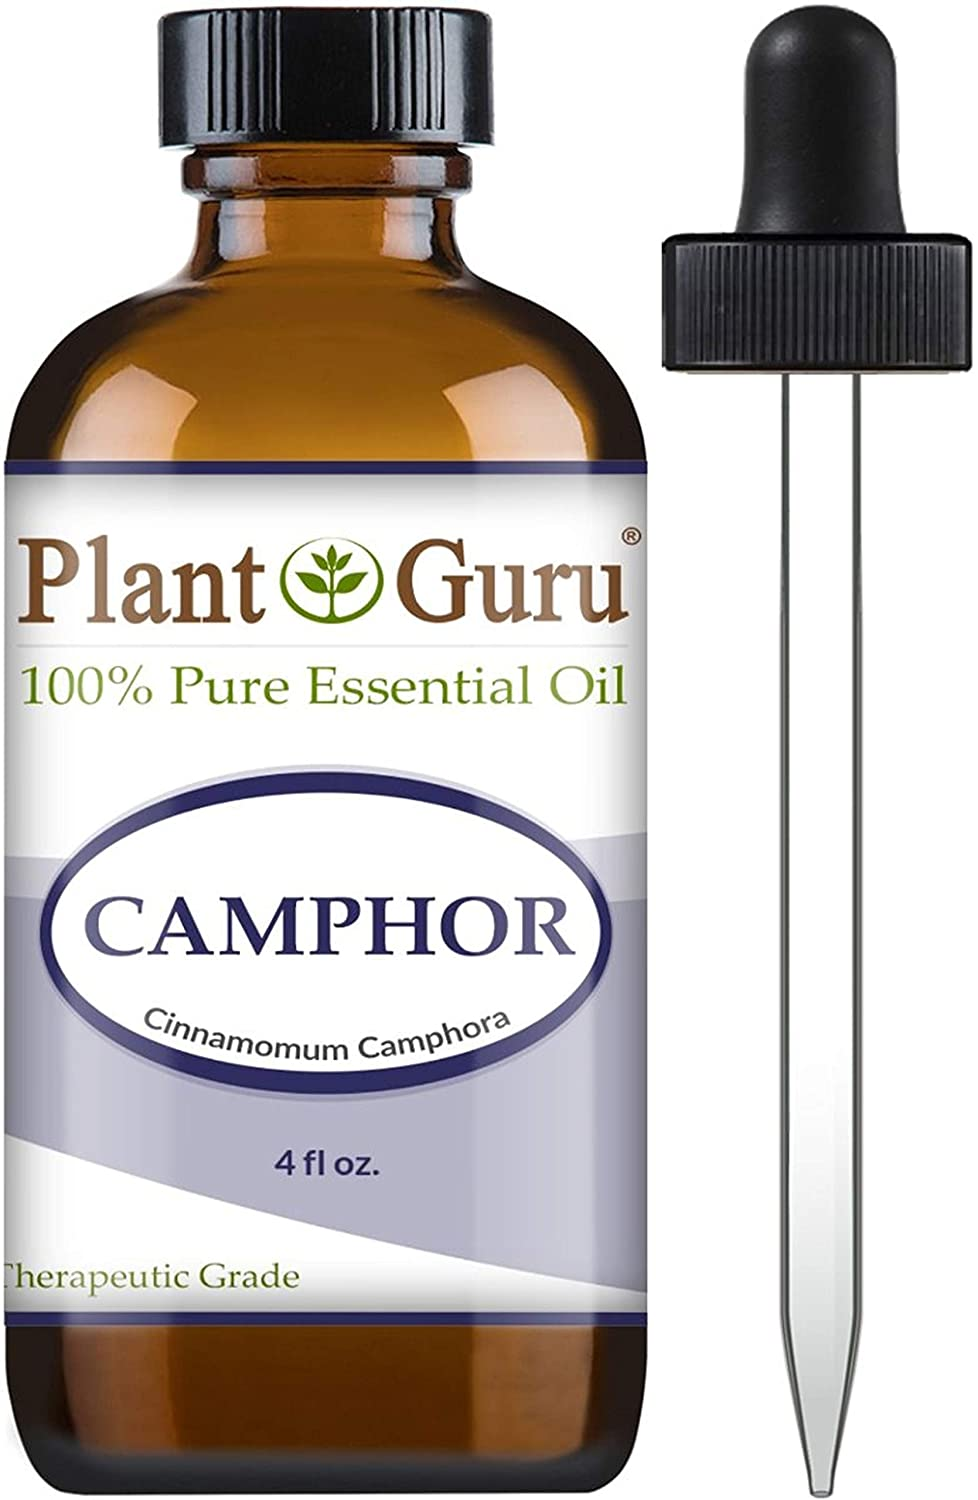 Camphor Essential Oil 4 oz 100% Pure Undiluted Therapeutic Grade. for Skin, Body, Hair Growth and Aromatherapy Diffuser.